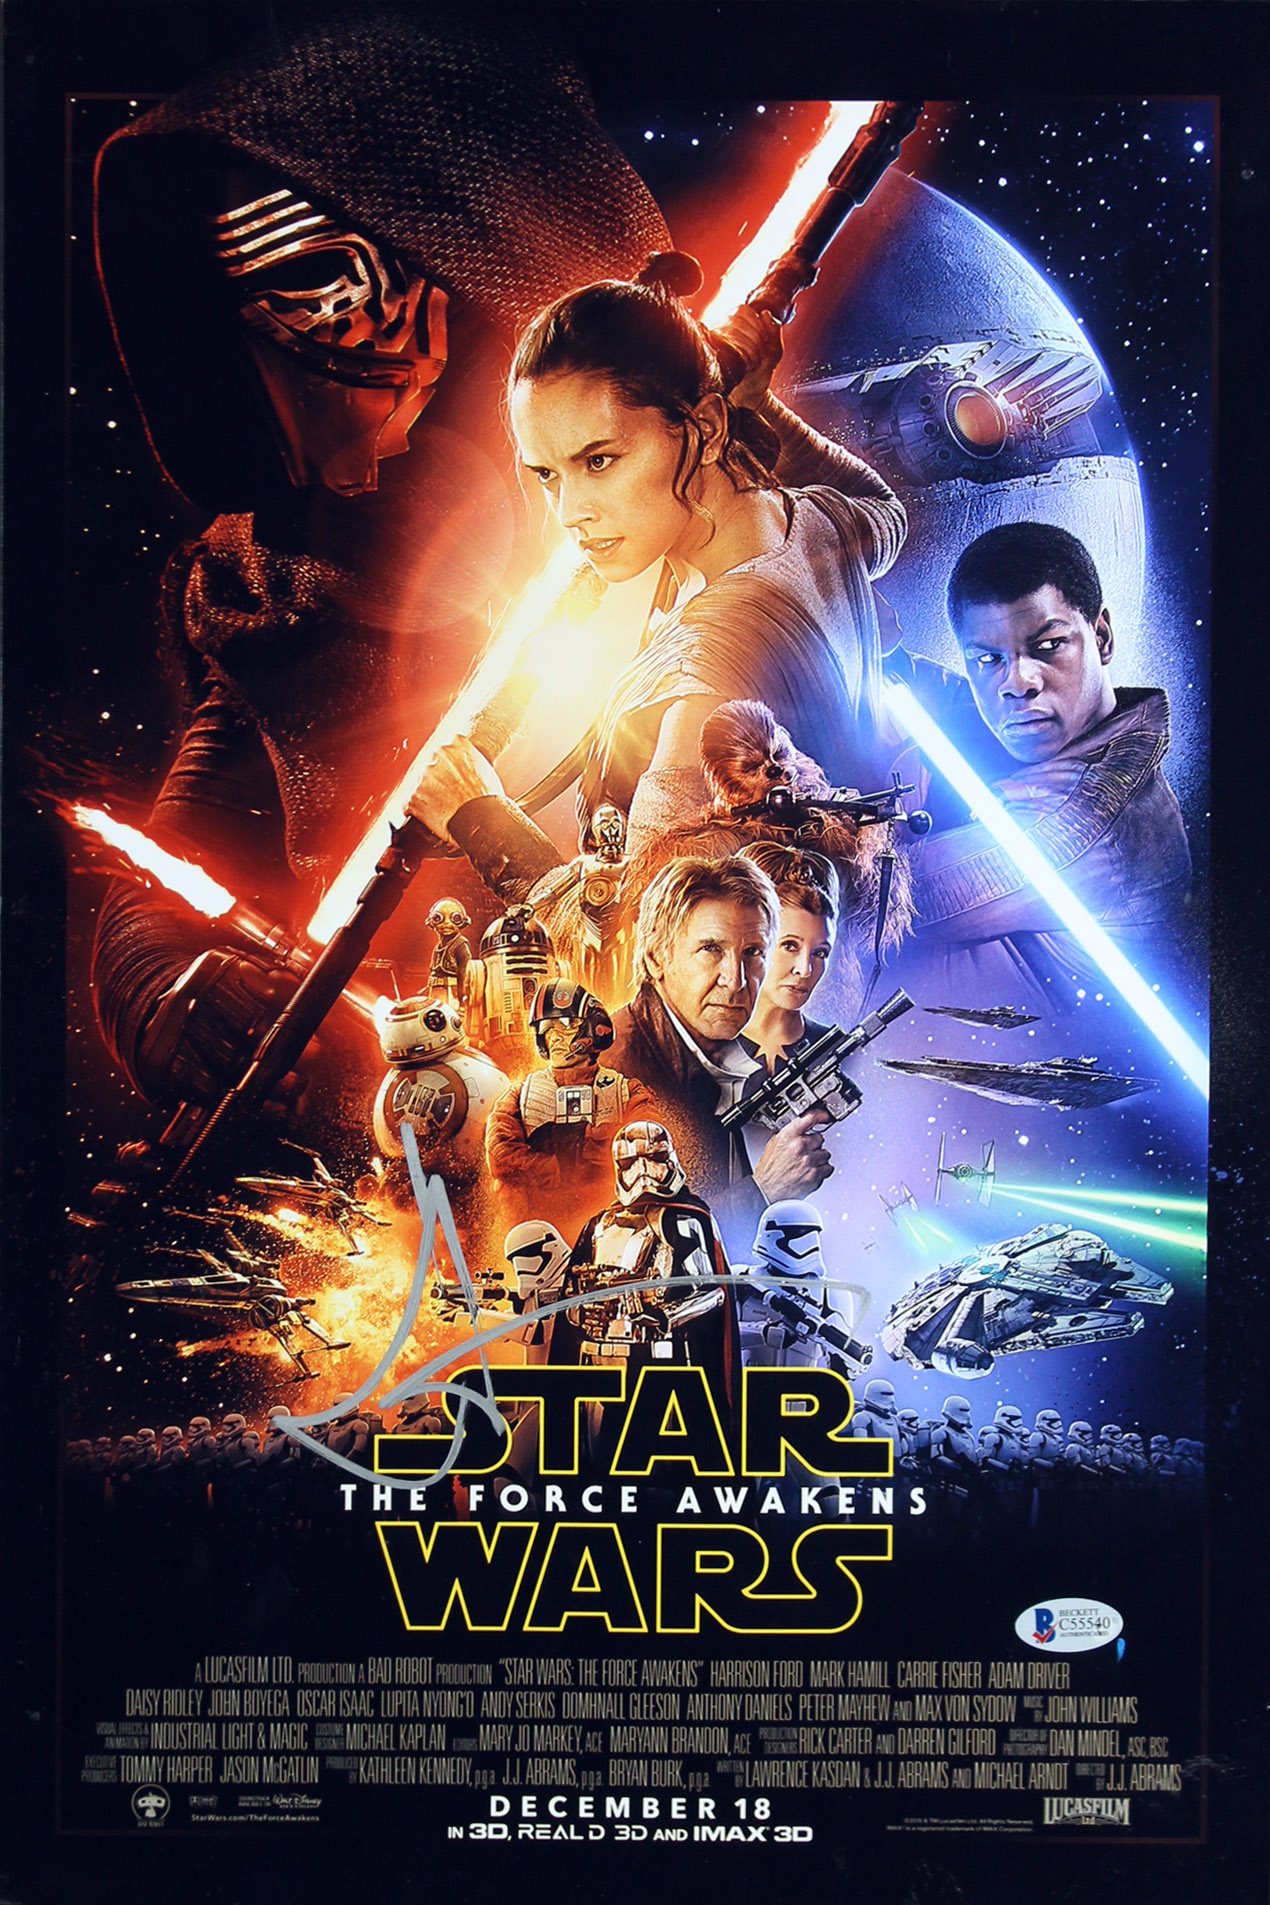 J.J. Abrams Star Wars The Force Awakens Authentic Signed 12x18 Photo BAS #C55540